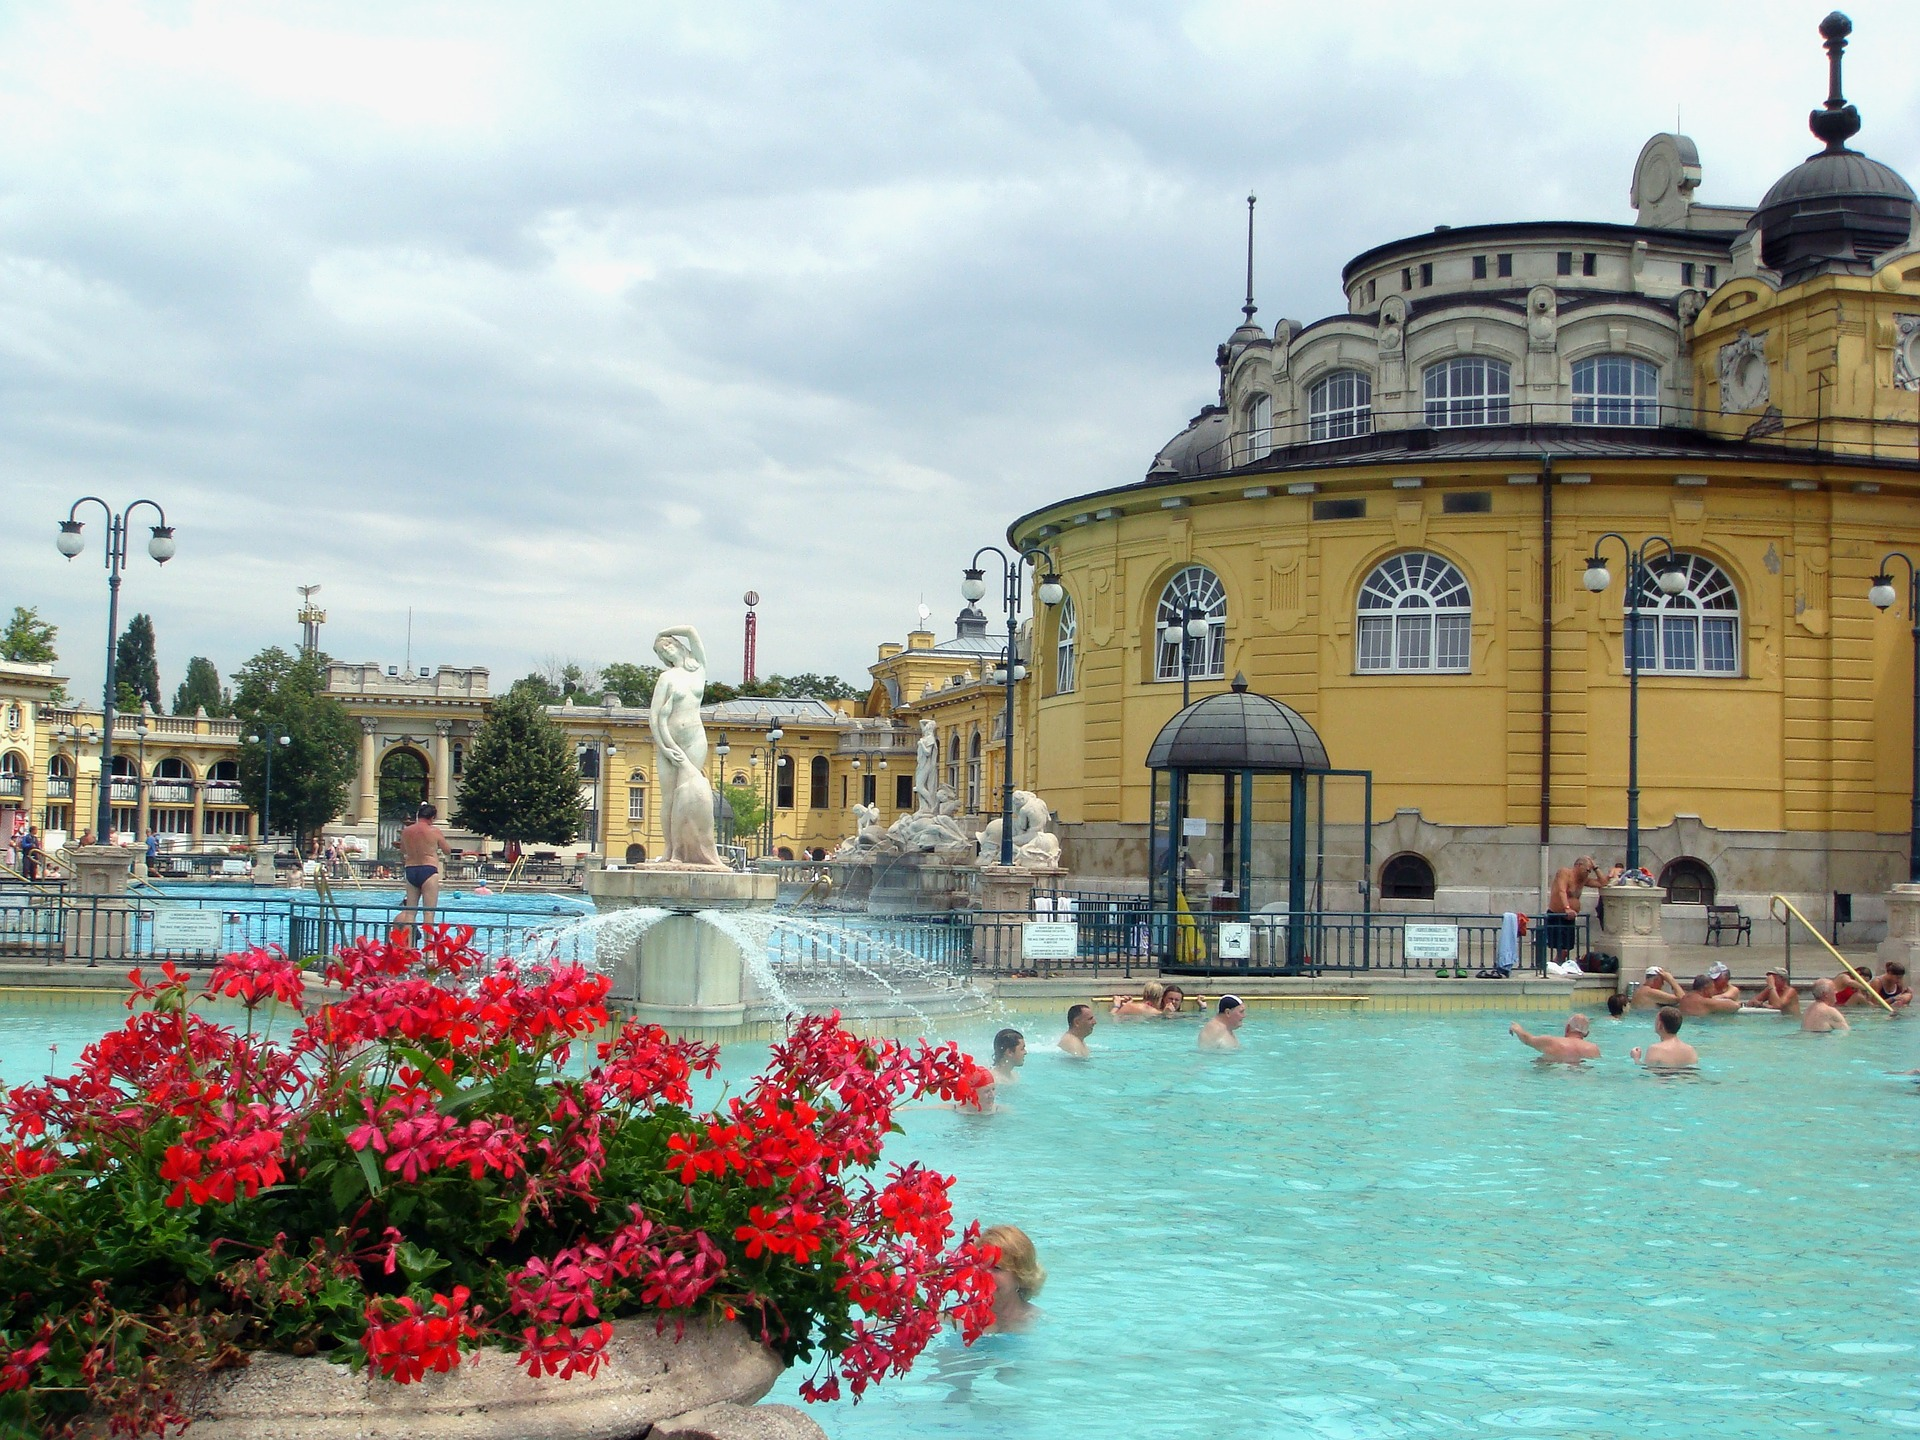 Budapest is known as the spa capital of the world